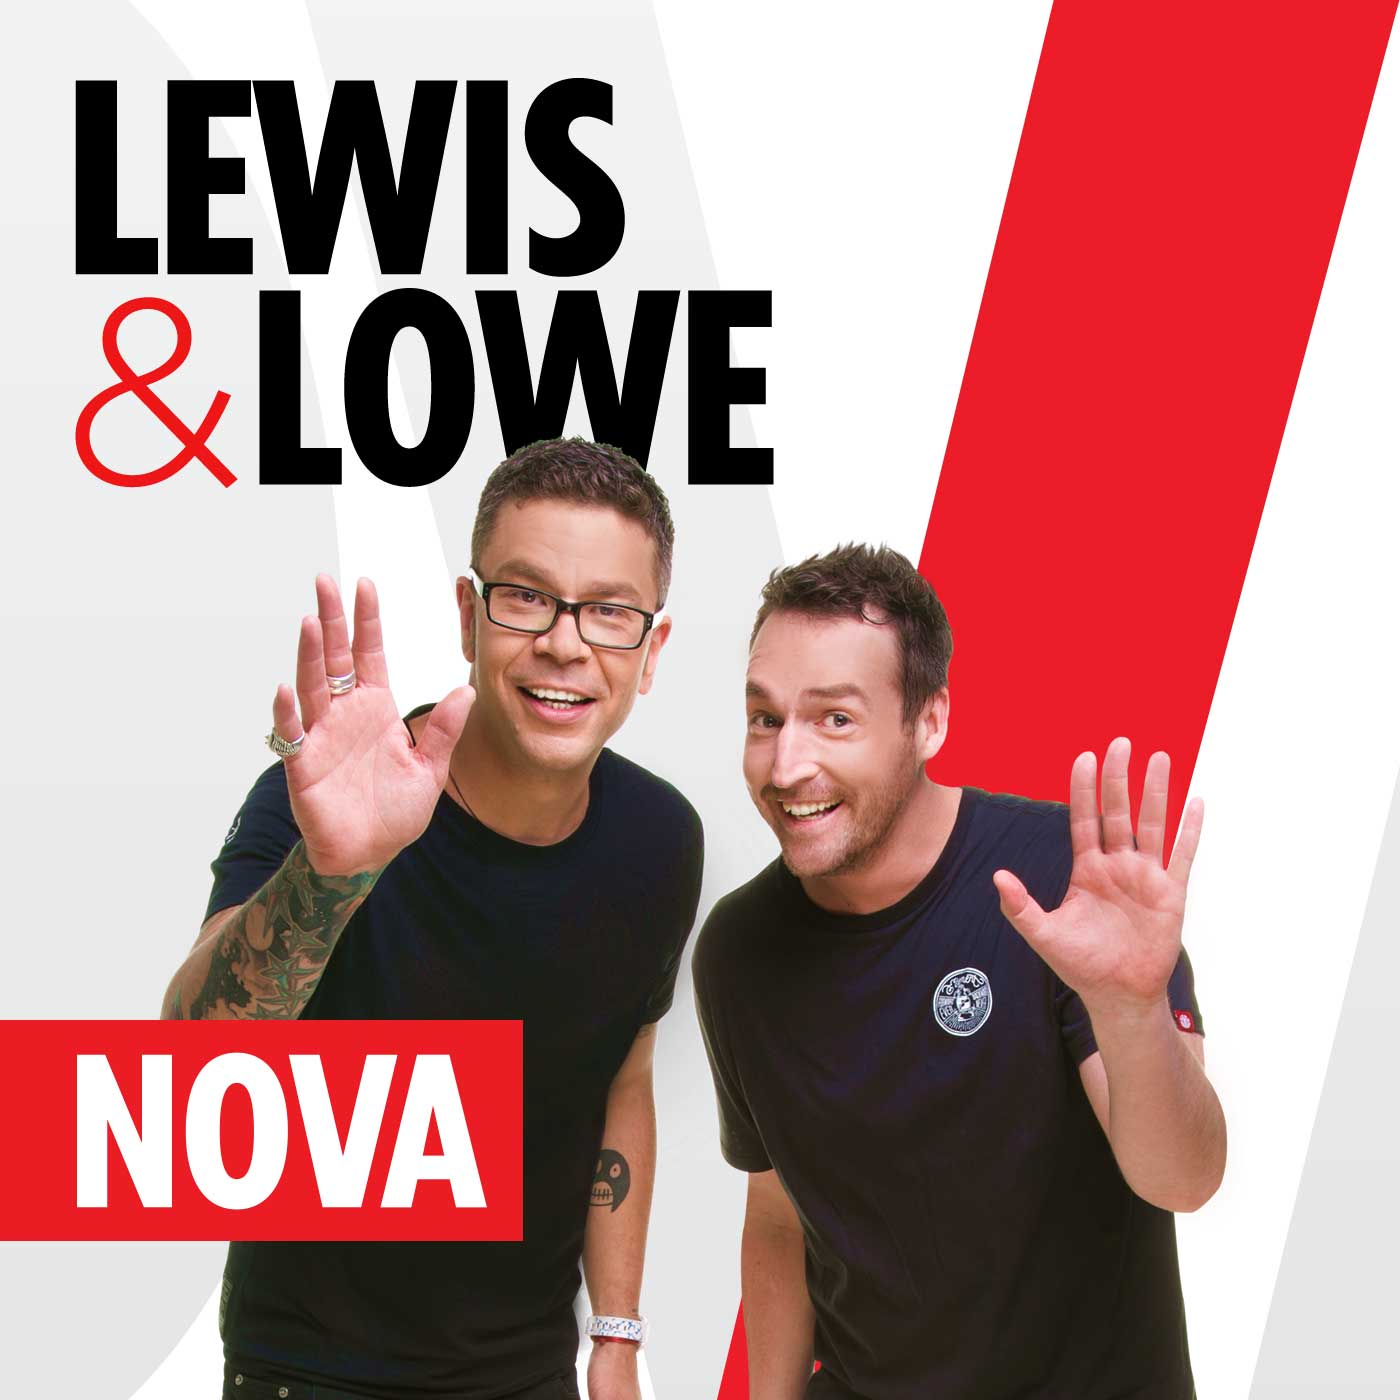 Lewis and Lowe